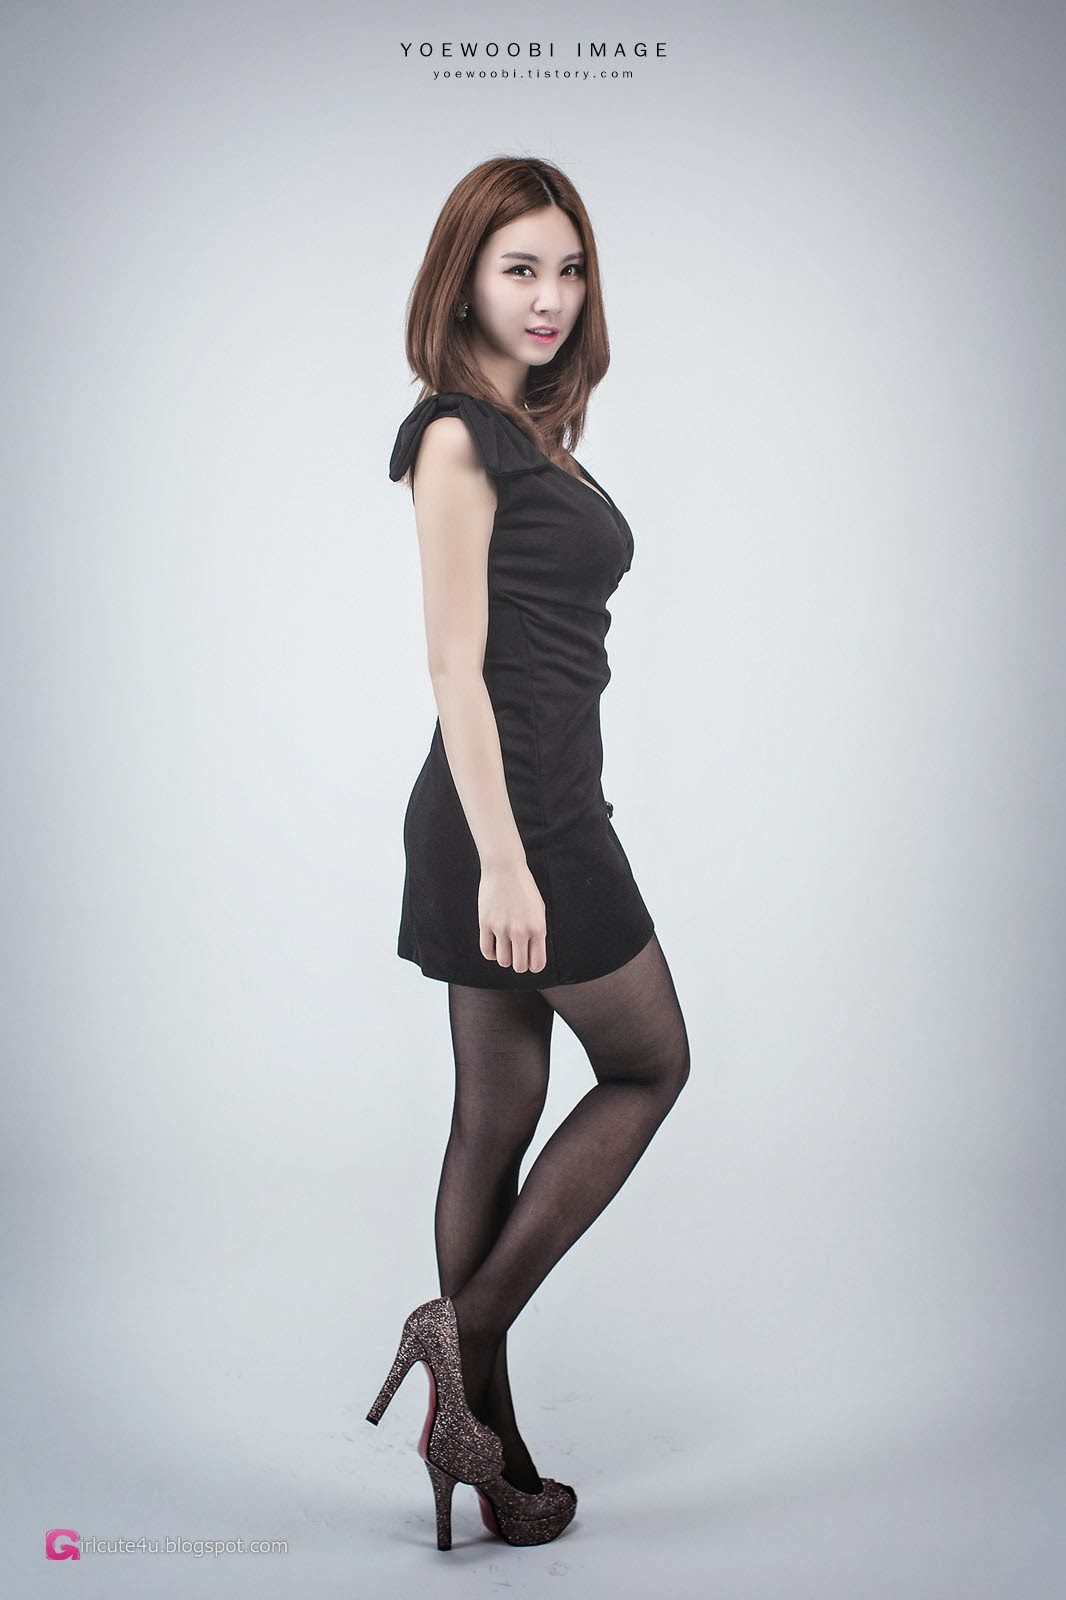 1 Lee Eun Yu - Little Black Dress - very cute asian girl-girlcute4u.blogspot.com